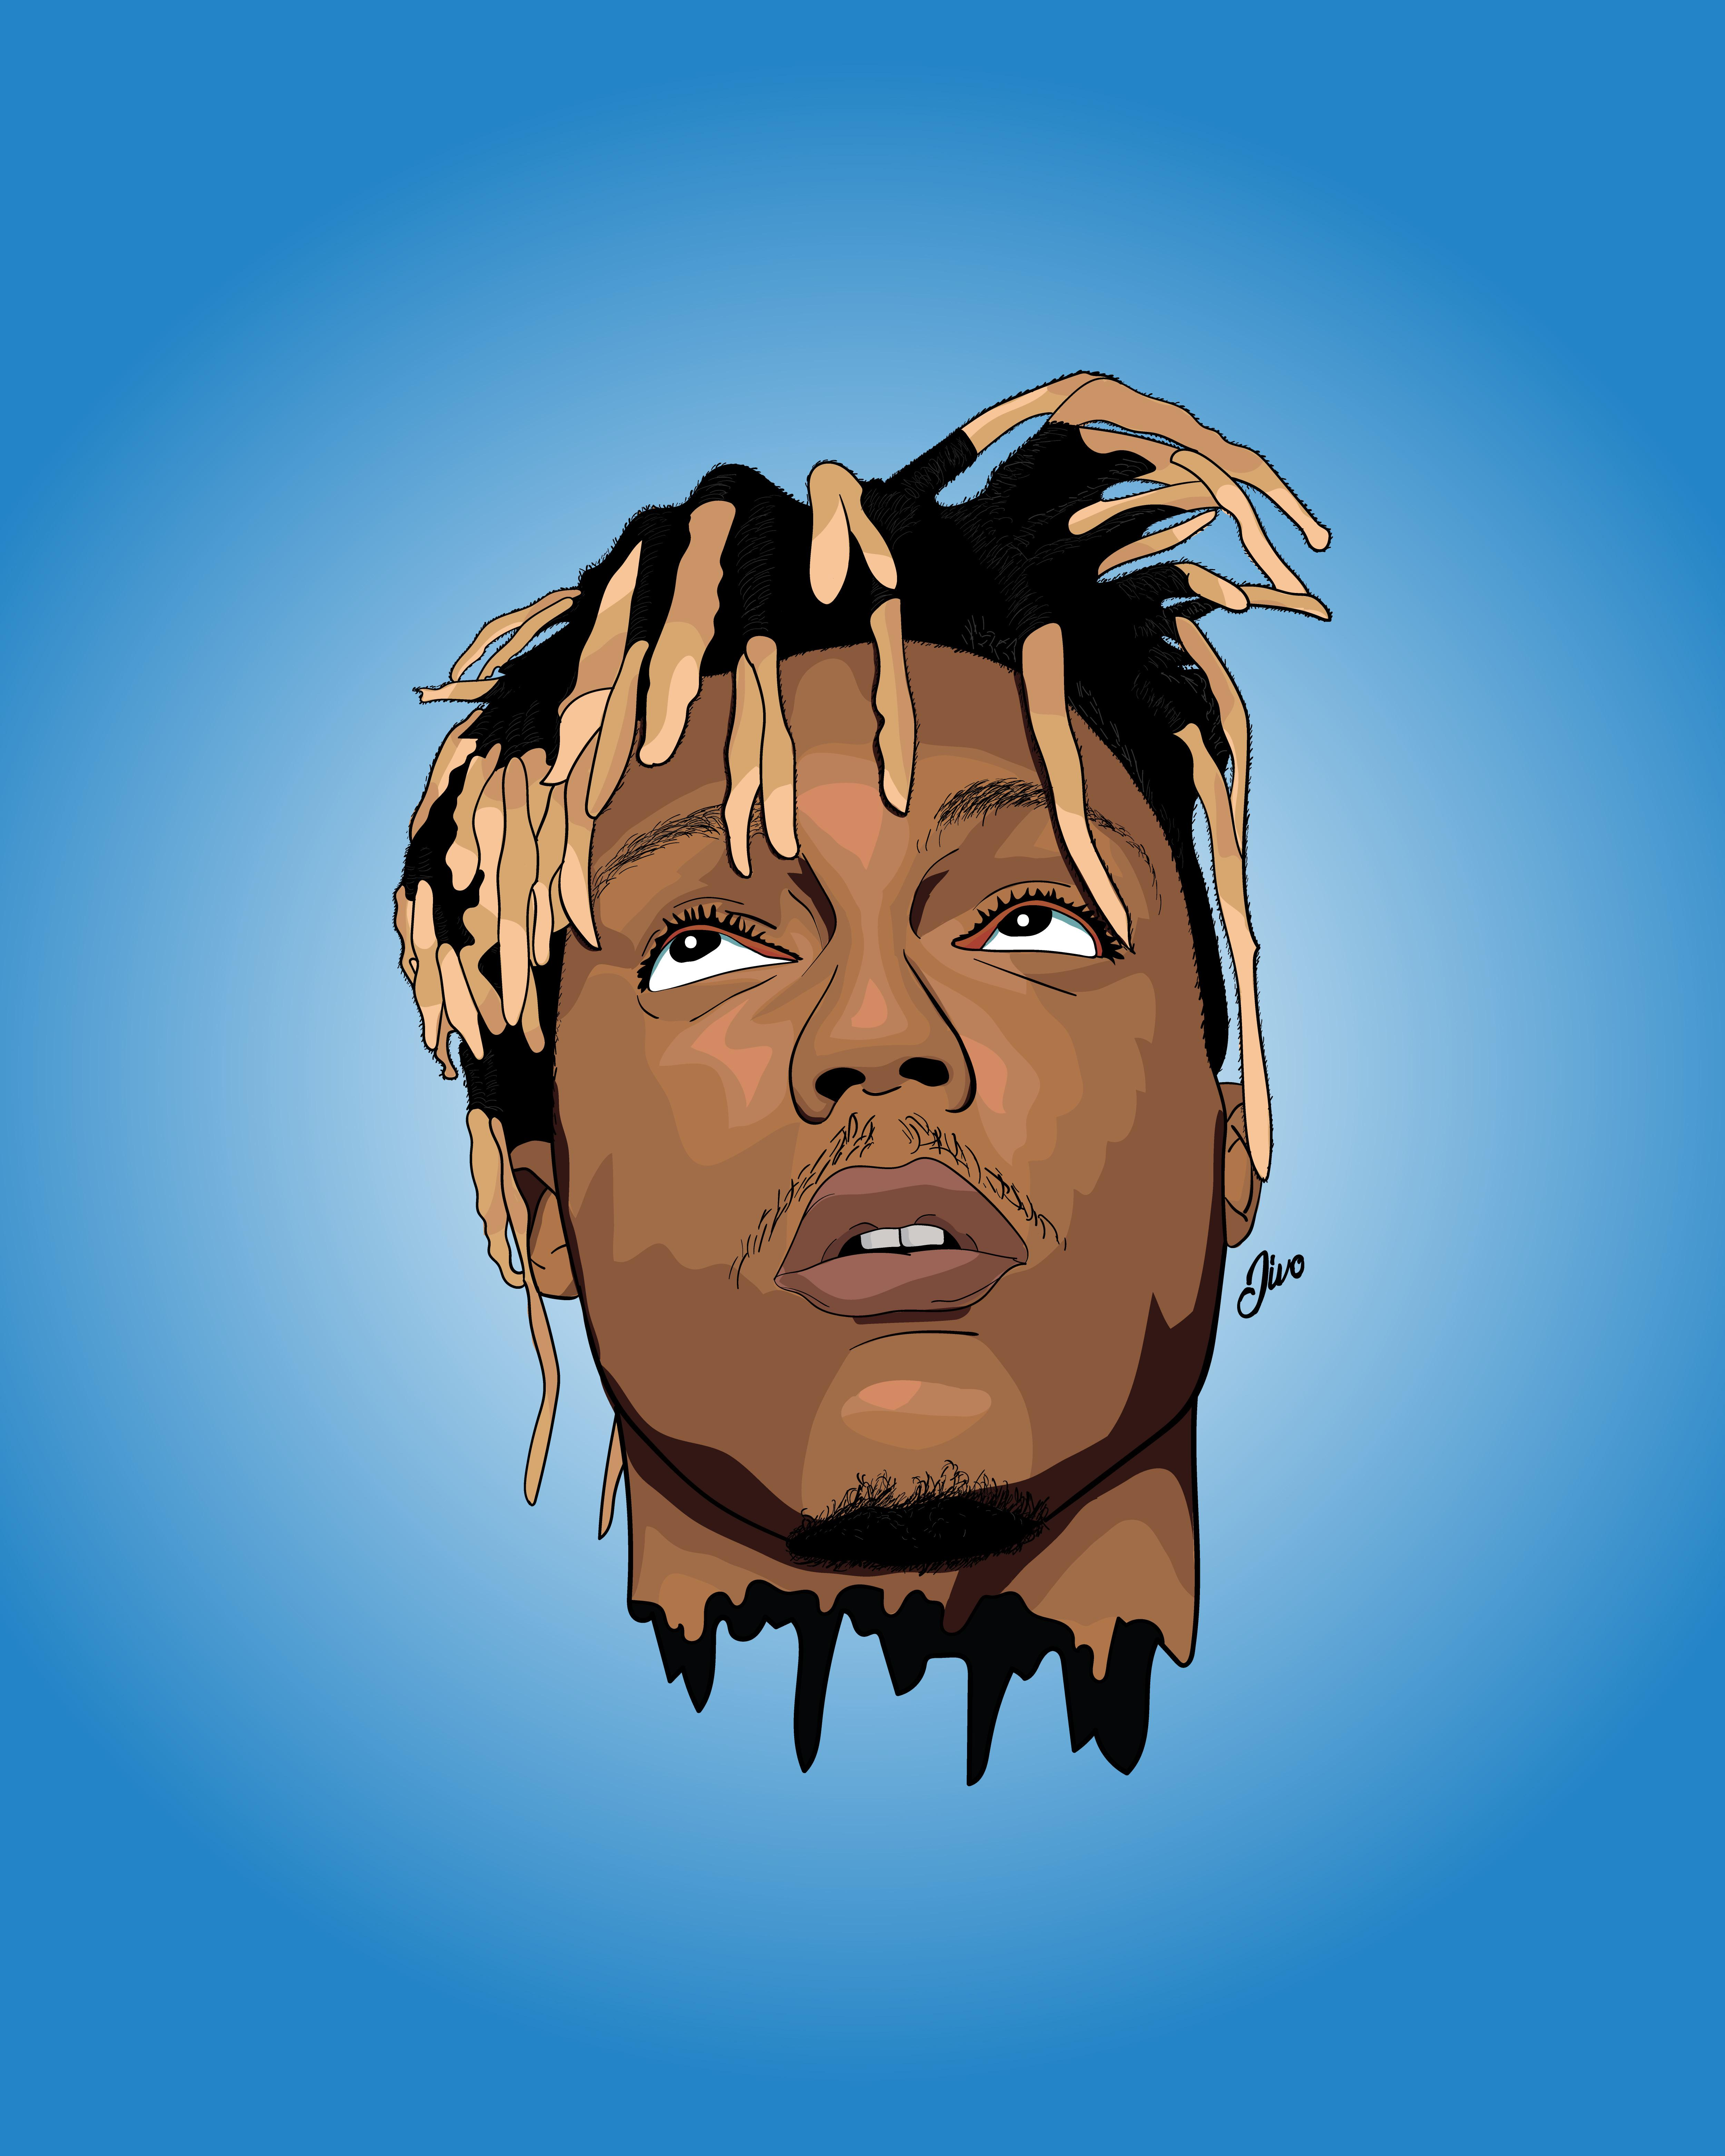 Juice Wrld Animated Pictures : juice, animated, pictures, Yesterday, Juice, Insta, Jivo_Designs, JuiceWRLD